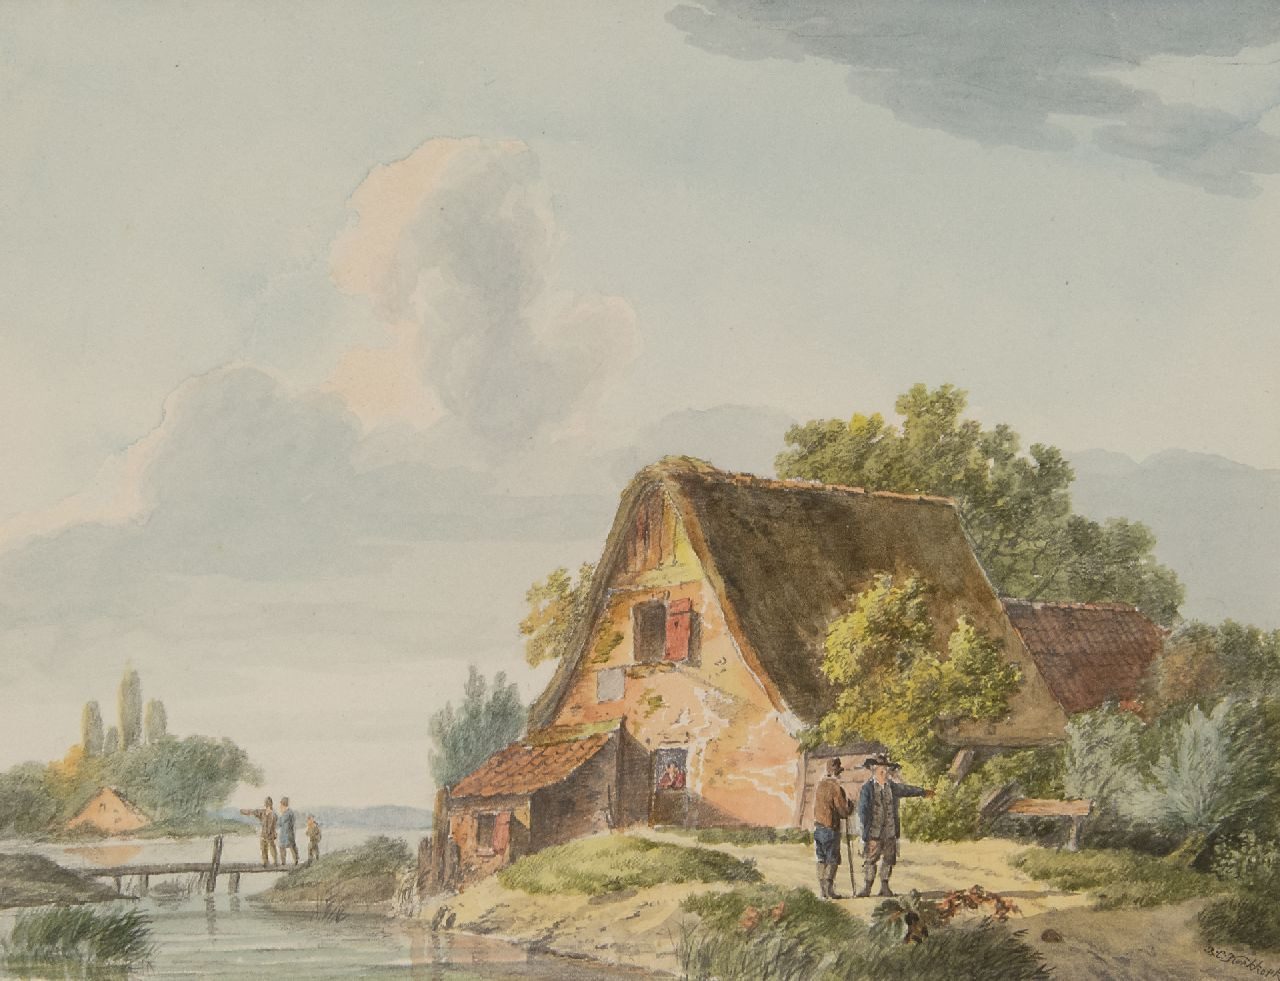 Koekkoek B.C.  | Barend Cornelis Koekkoek | Watercolours and other works on paper offered for sale | Travellers near a cottage by the river, watercolour on paper 14.7 x 19.4 cm, signed l.r.